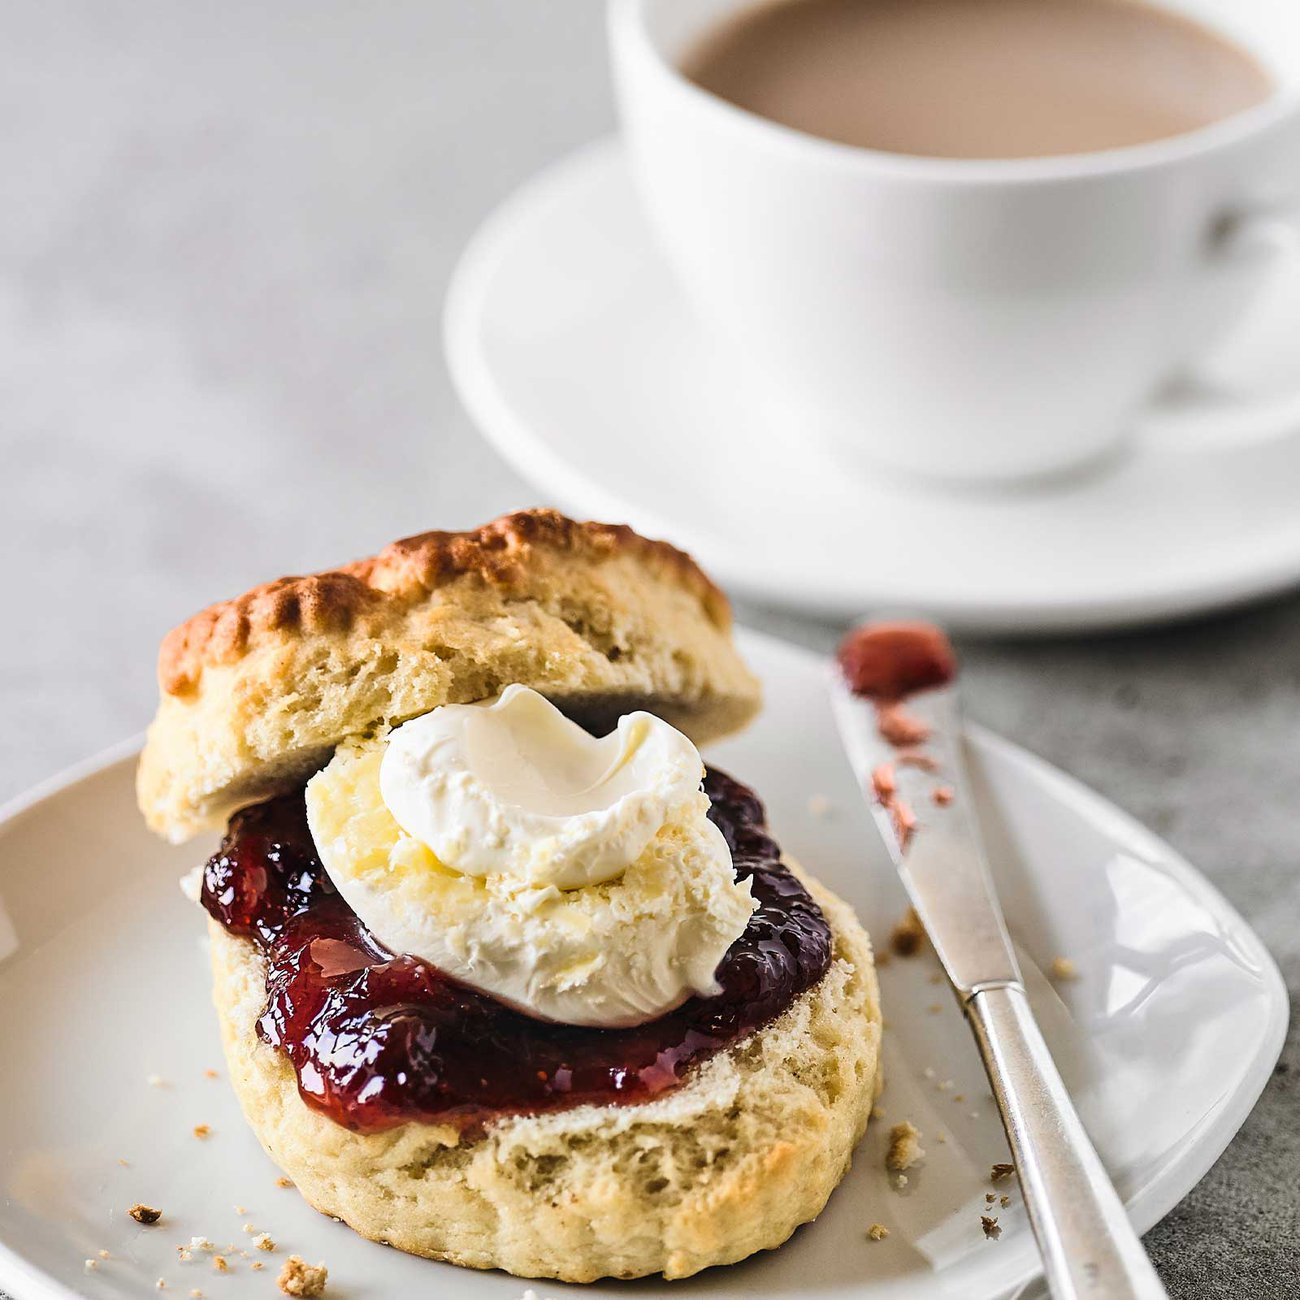 Scones with jam and cream are the most famous part of afternoon tea